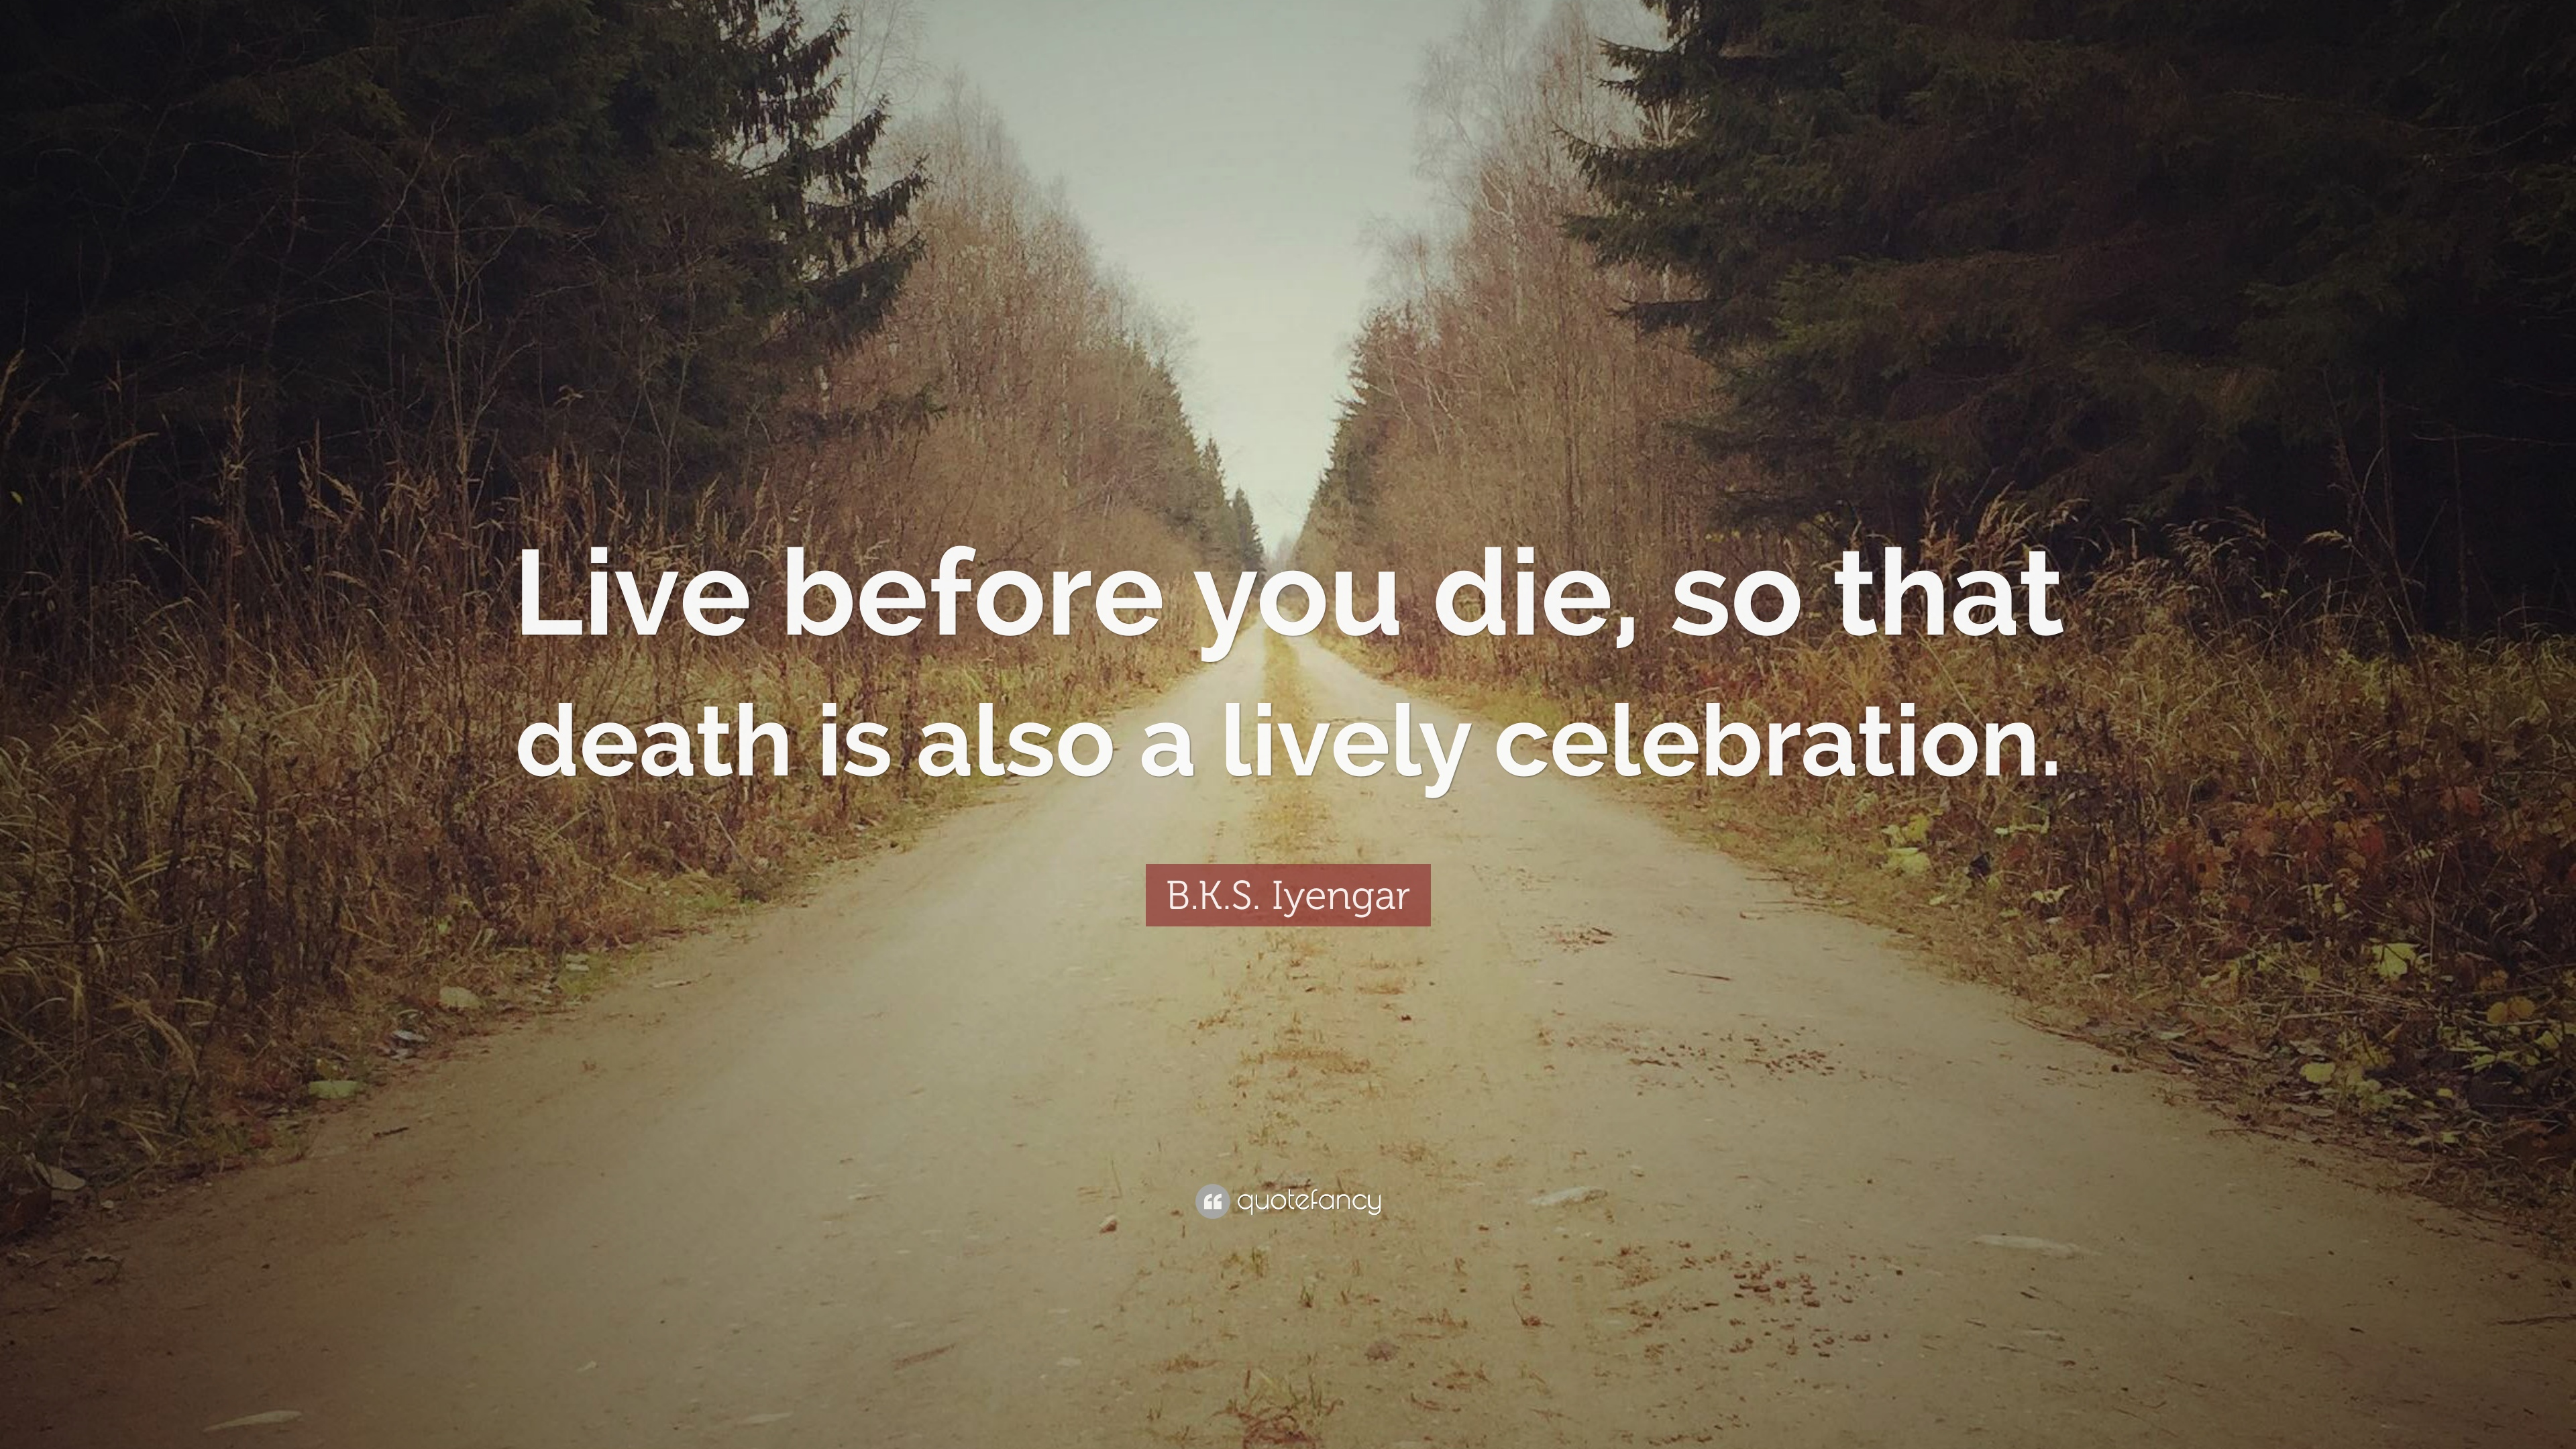 How live you die